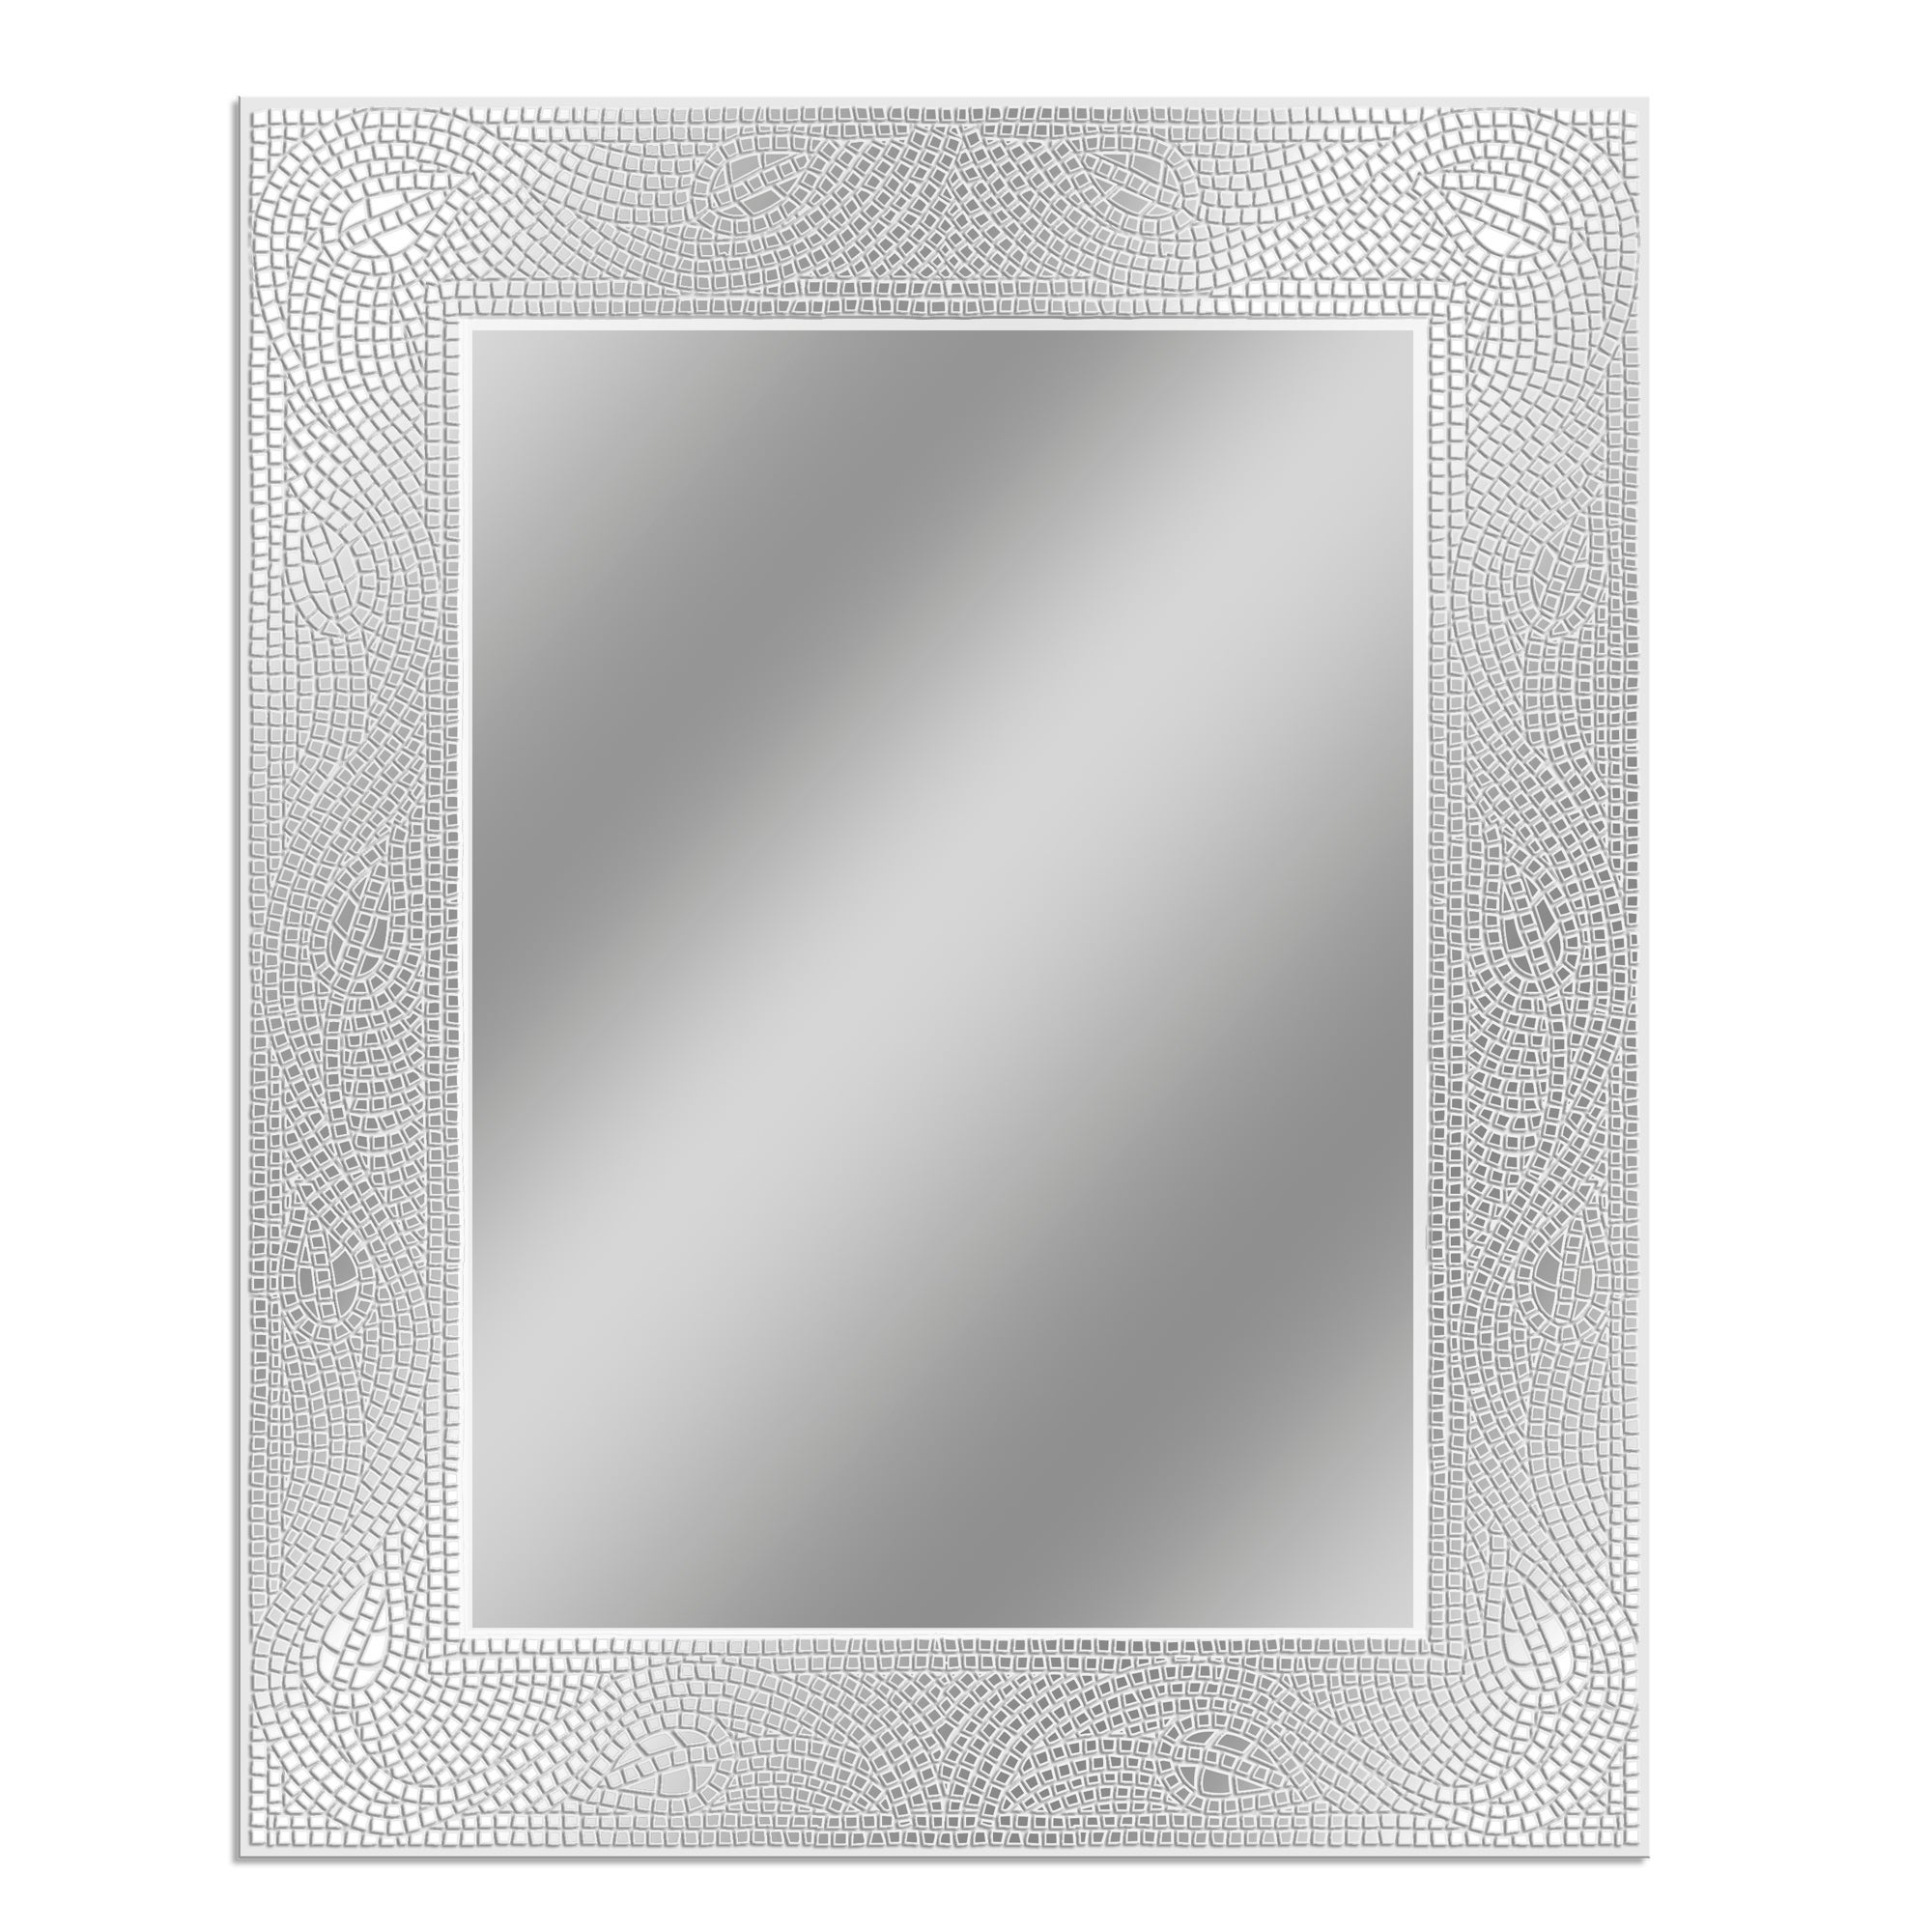 2020 Crystal Wall Mirrors For Headwest Crystal Mosaic Etched Wall Mirror – Off White – 24 X (View 17 of 20)